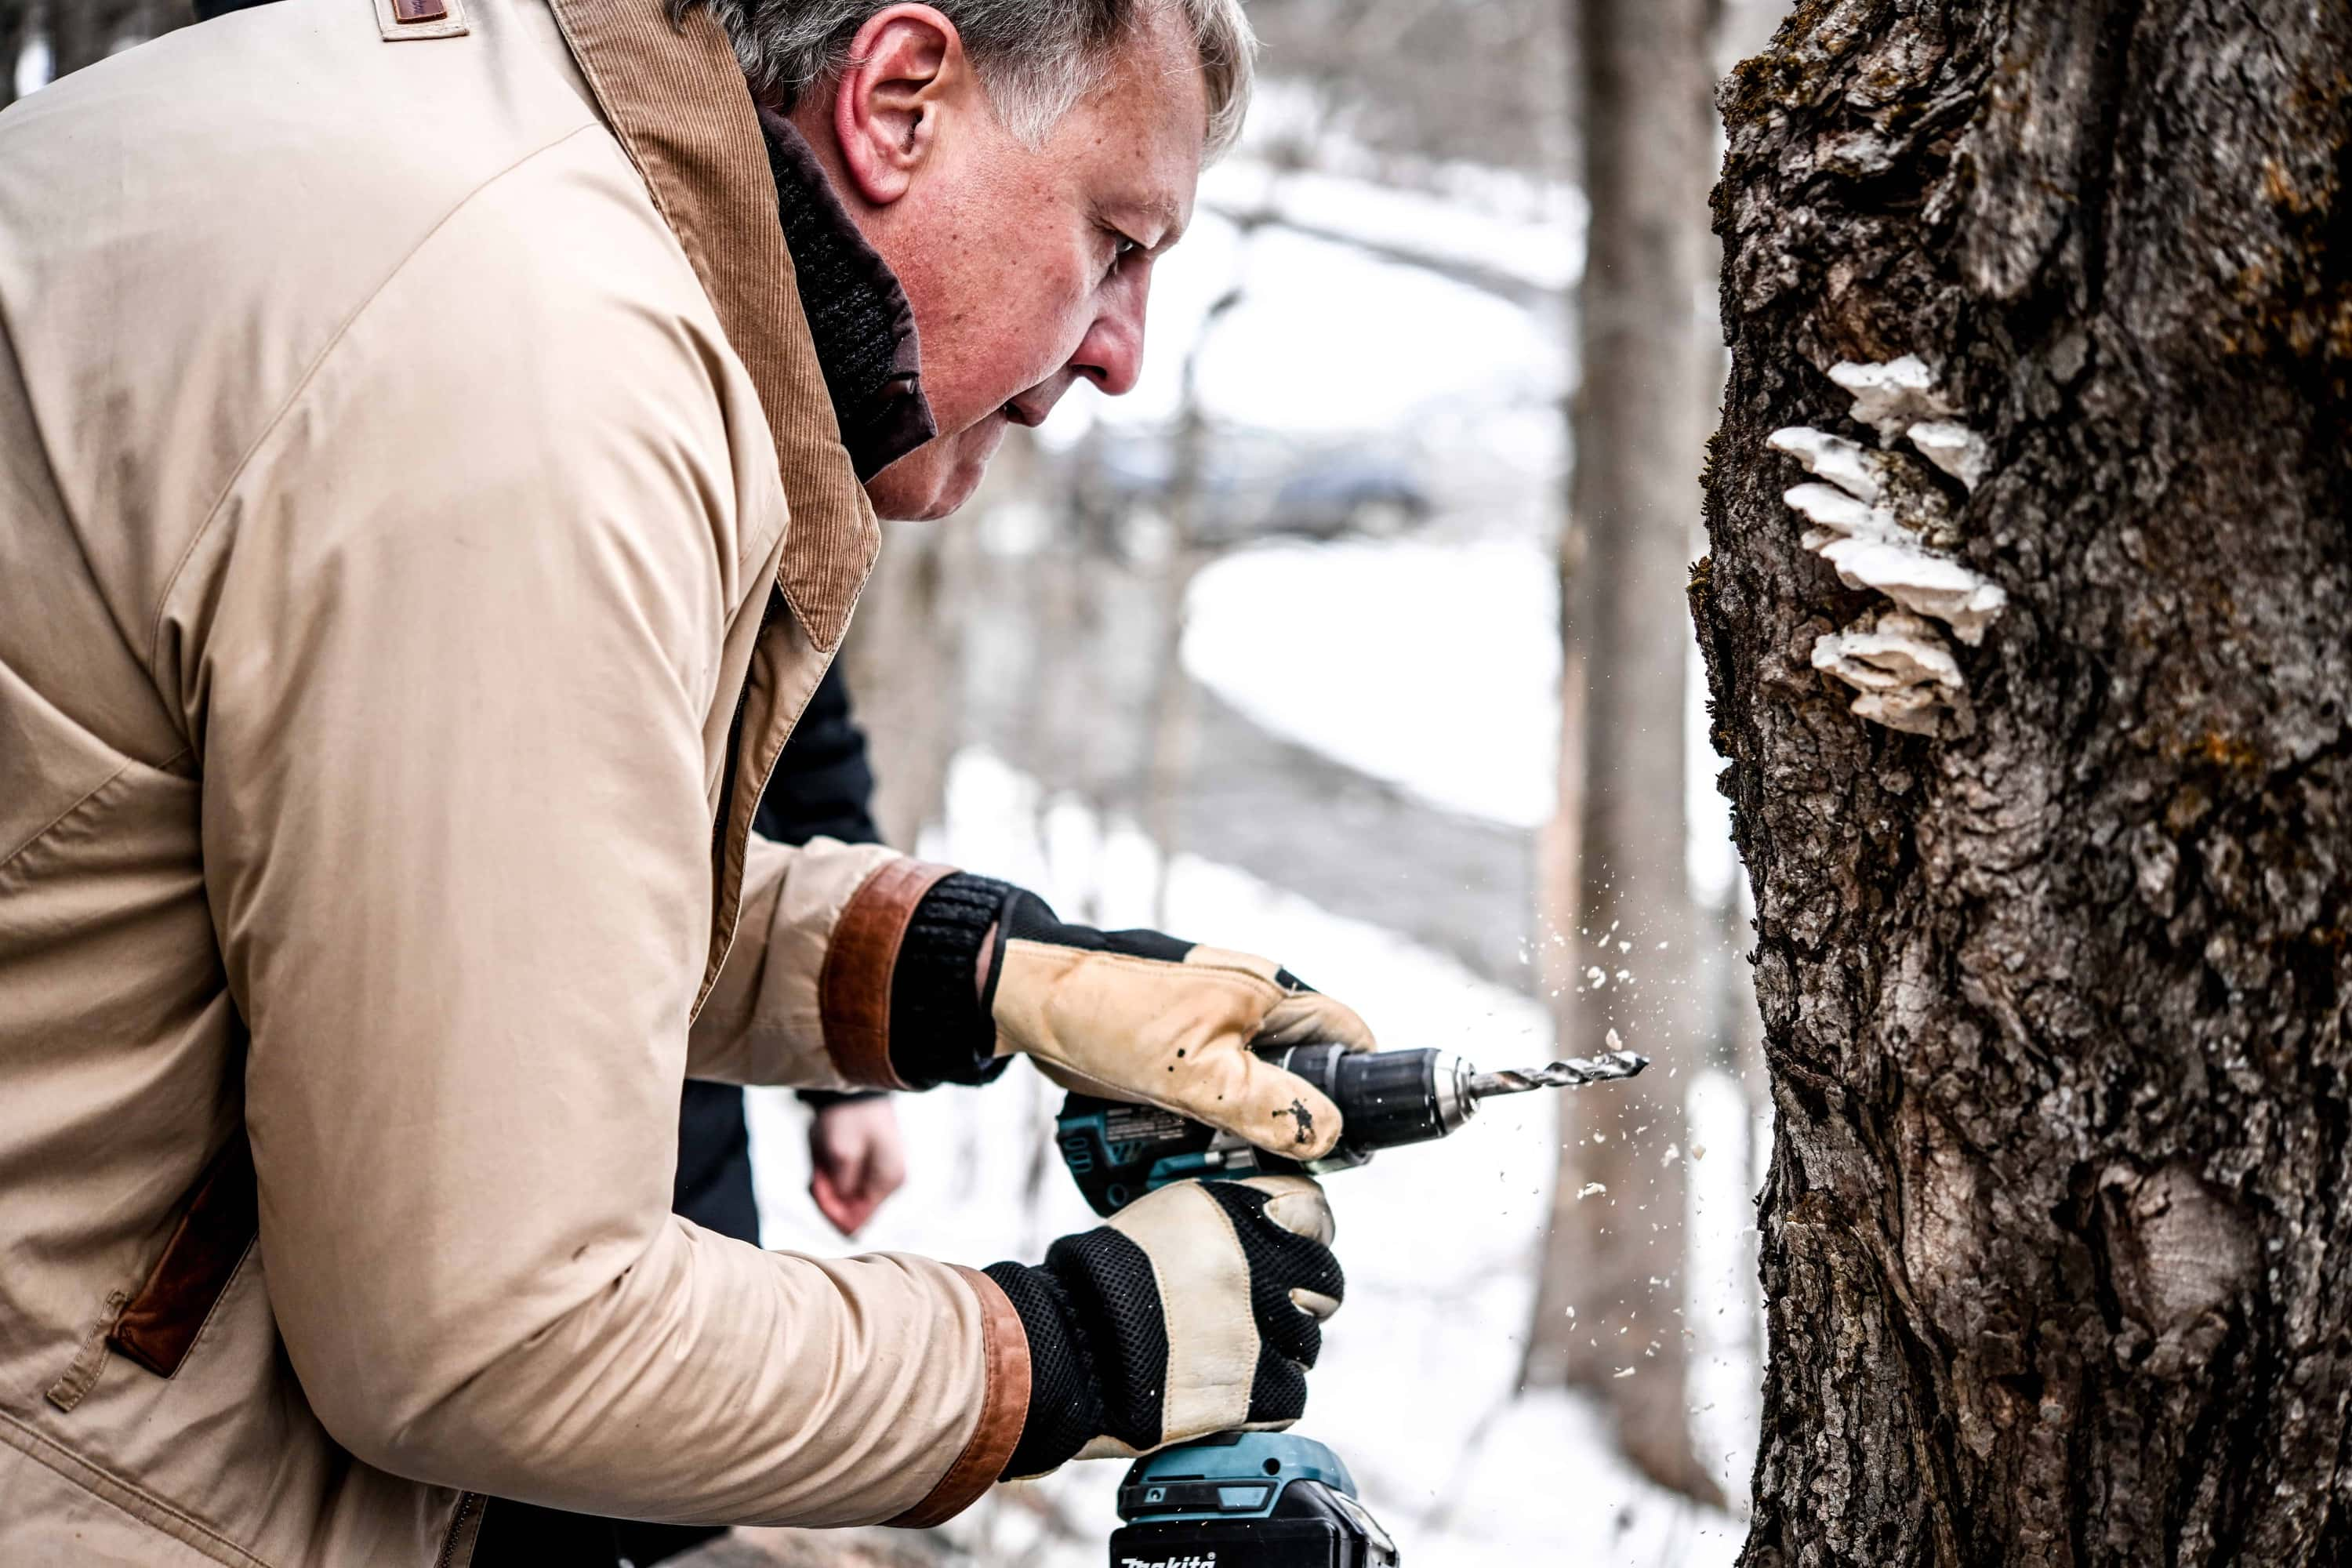 Close up of person drilling a hole into a maple tree to collect sap